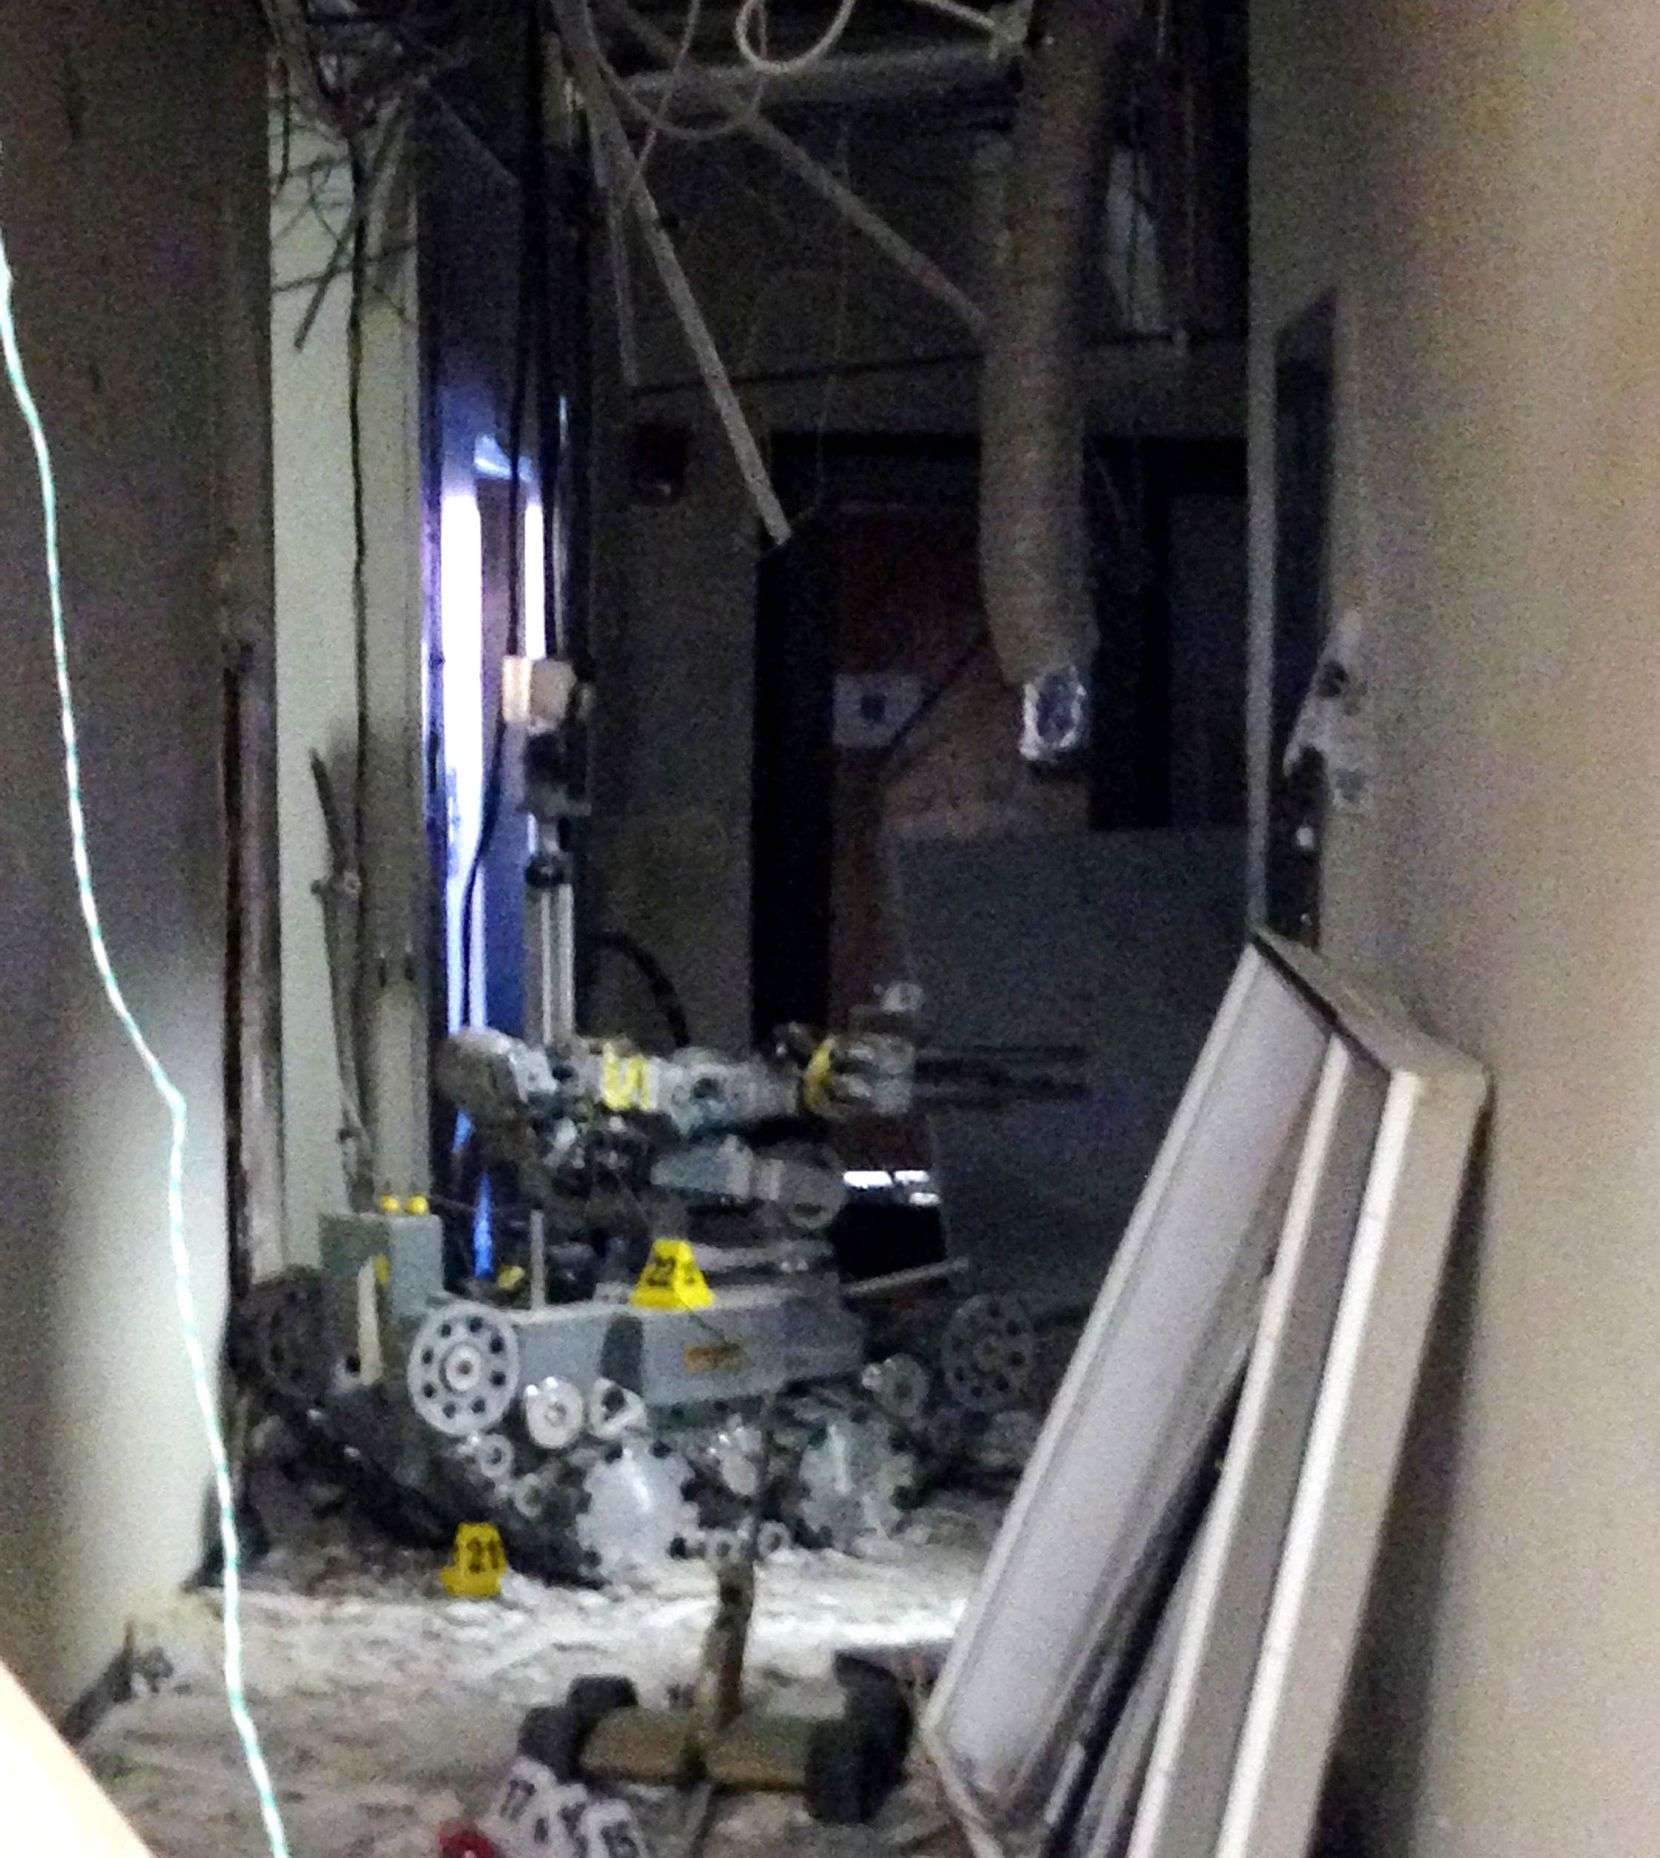 This is the remote-controlled robot that two officers used to detonate a brick of C-4 explosive that killed gunman Micah Johnson. The photo is of the scene inside the hallway at El Centro College, taken the morning after the July 7 shootings.